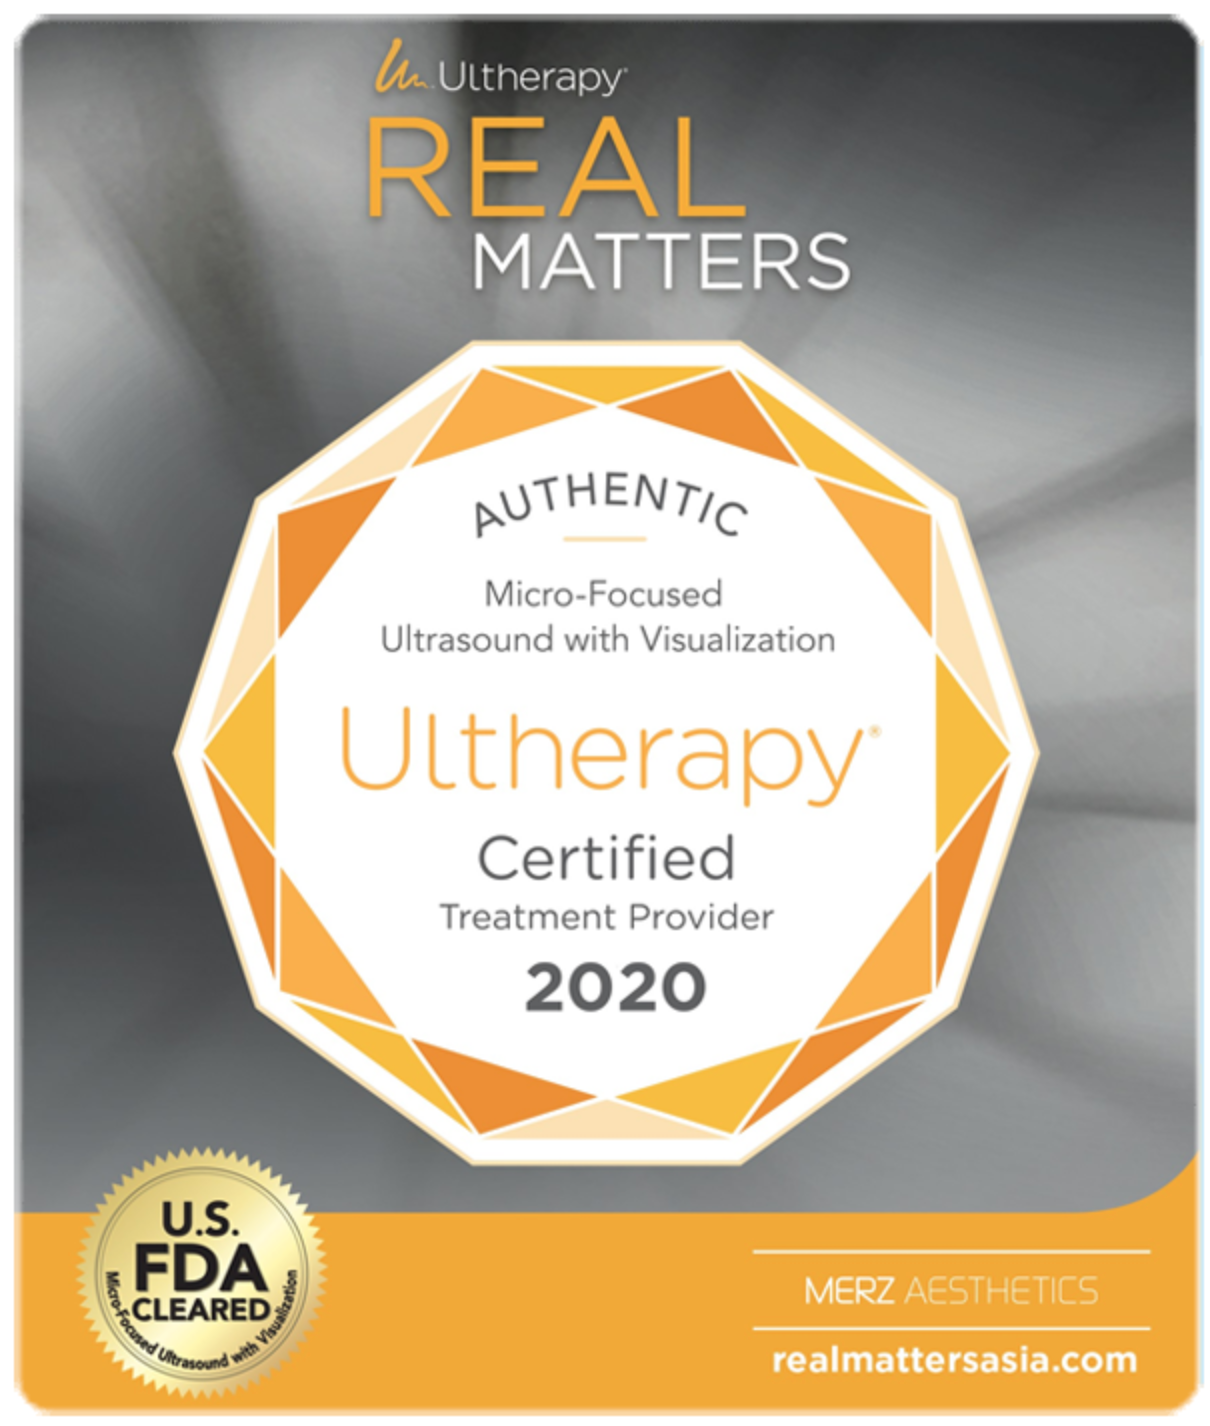 Real matters at Ultherapy Singapore